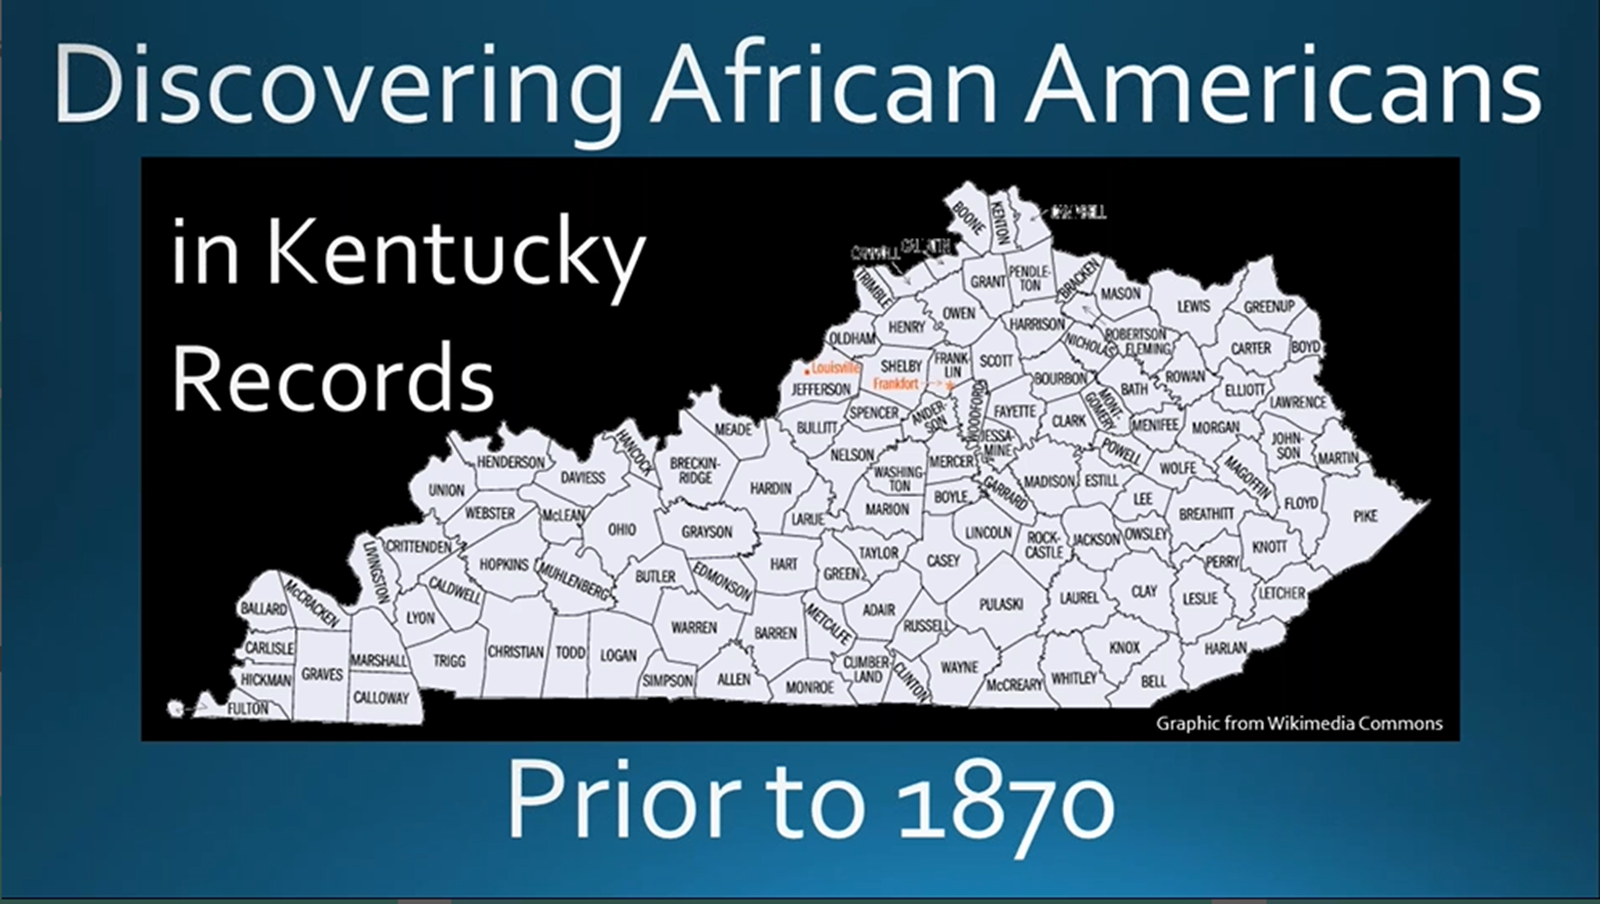 Discovering African Americans in Kentucky Prior to 1870